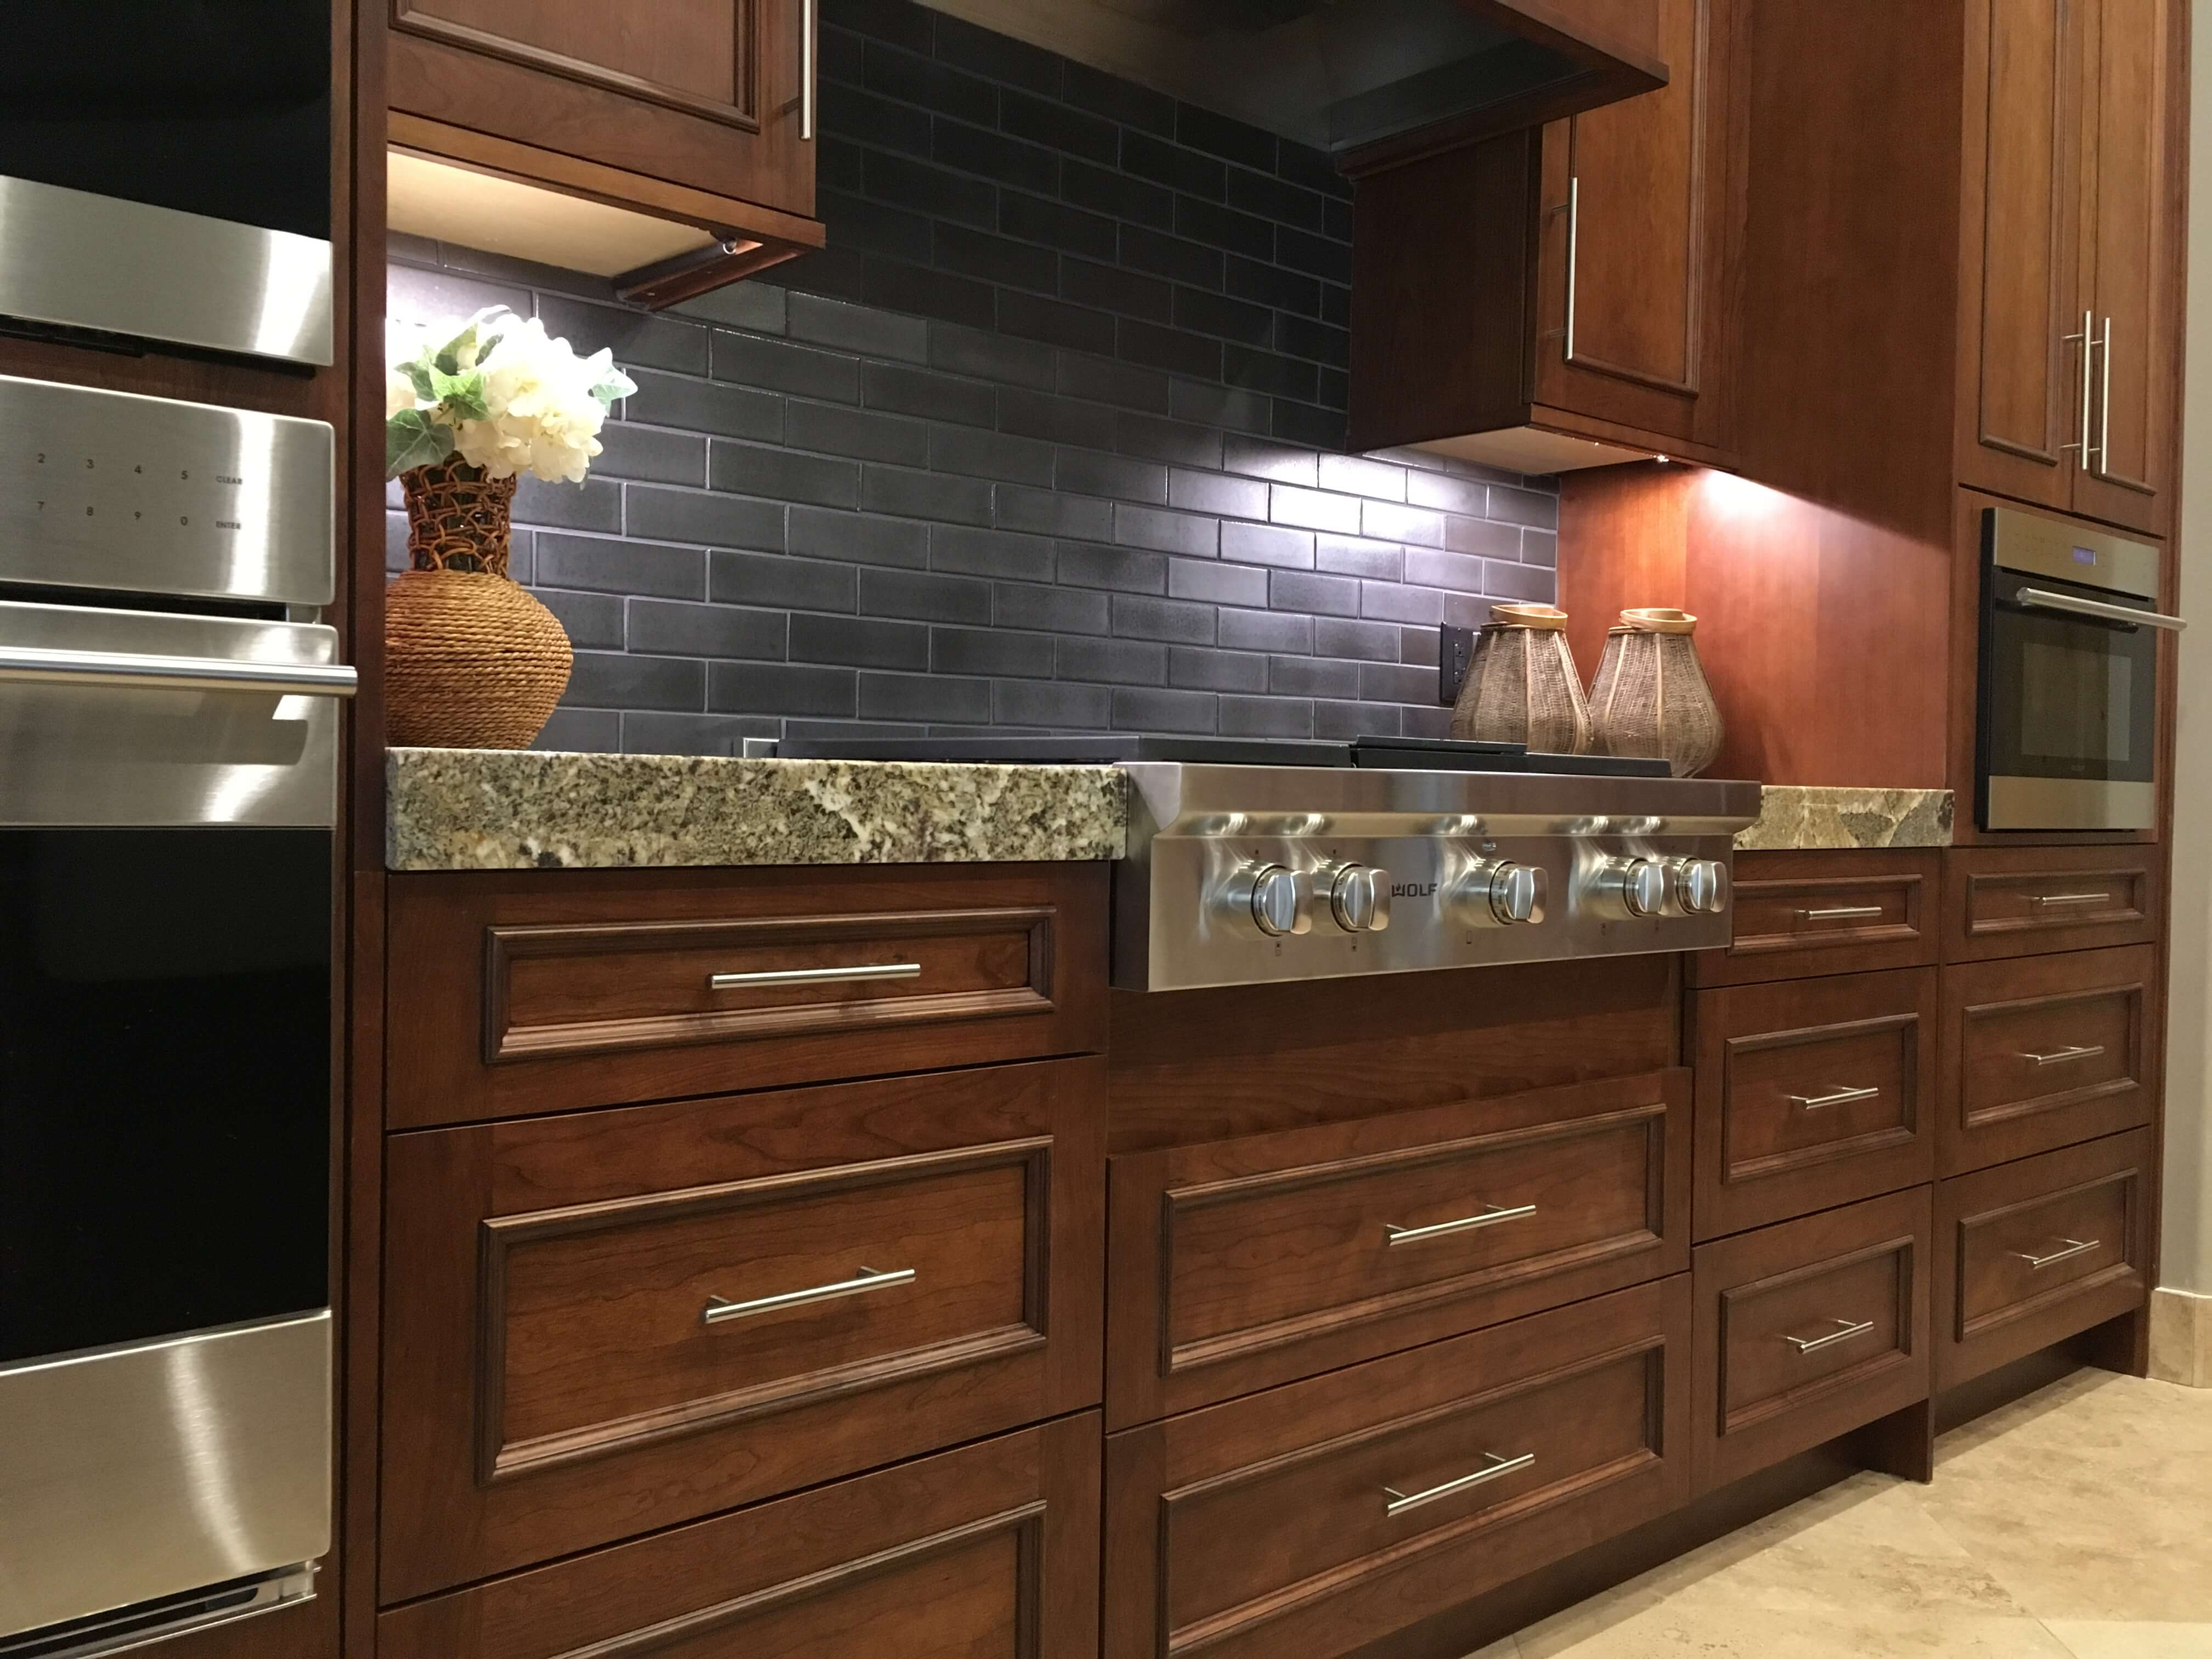 Fallone Kitchen Bath Best Kitchen And Bath Remodelers In Scottsdale - Gary's home and bathroom remodeling